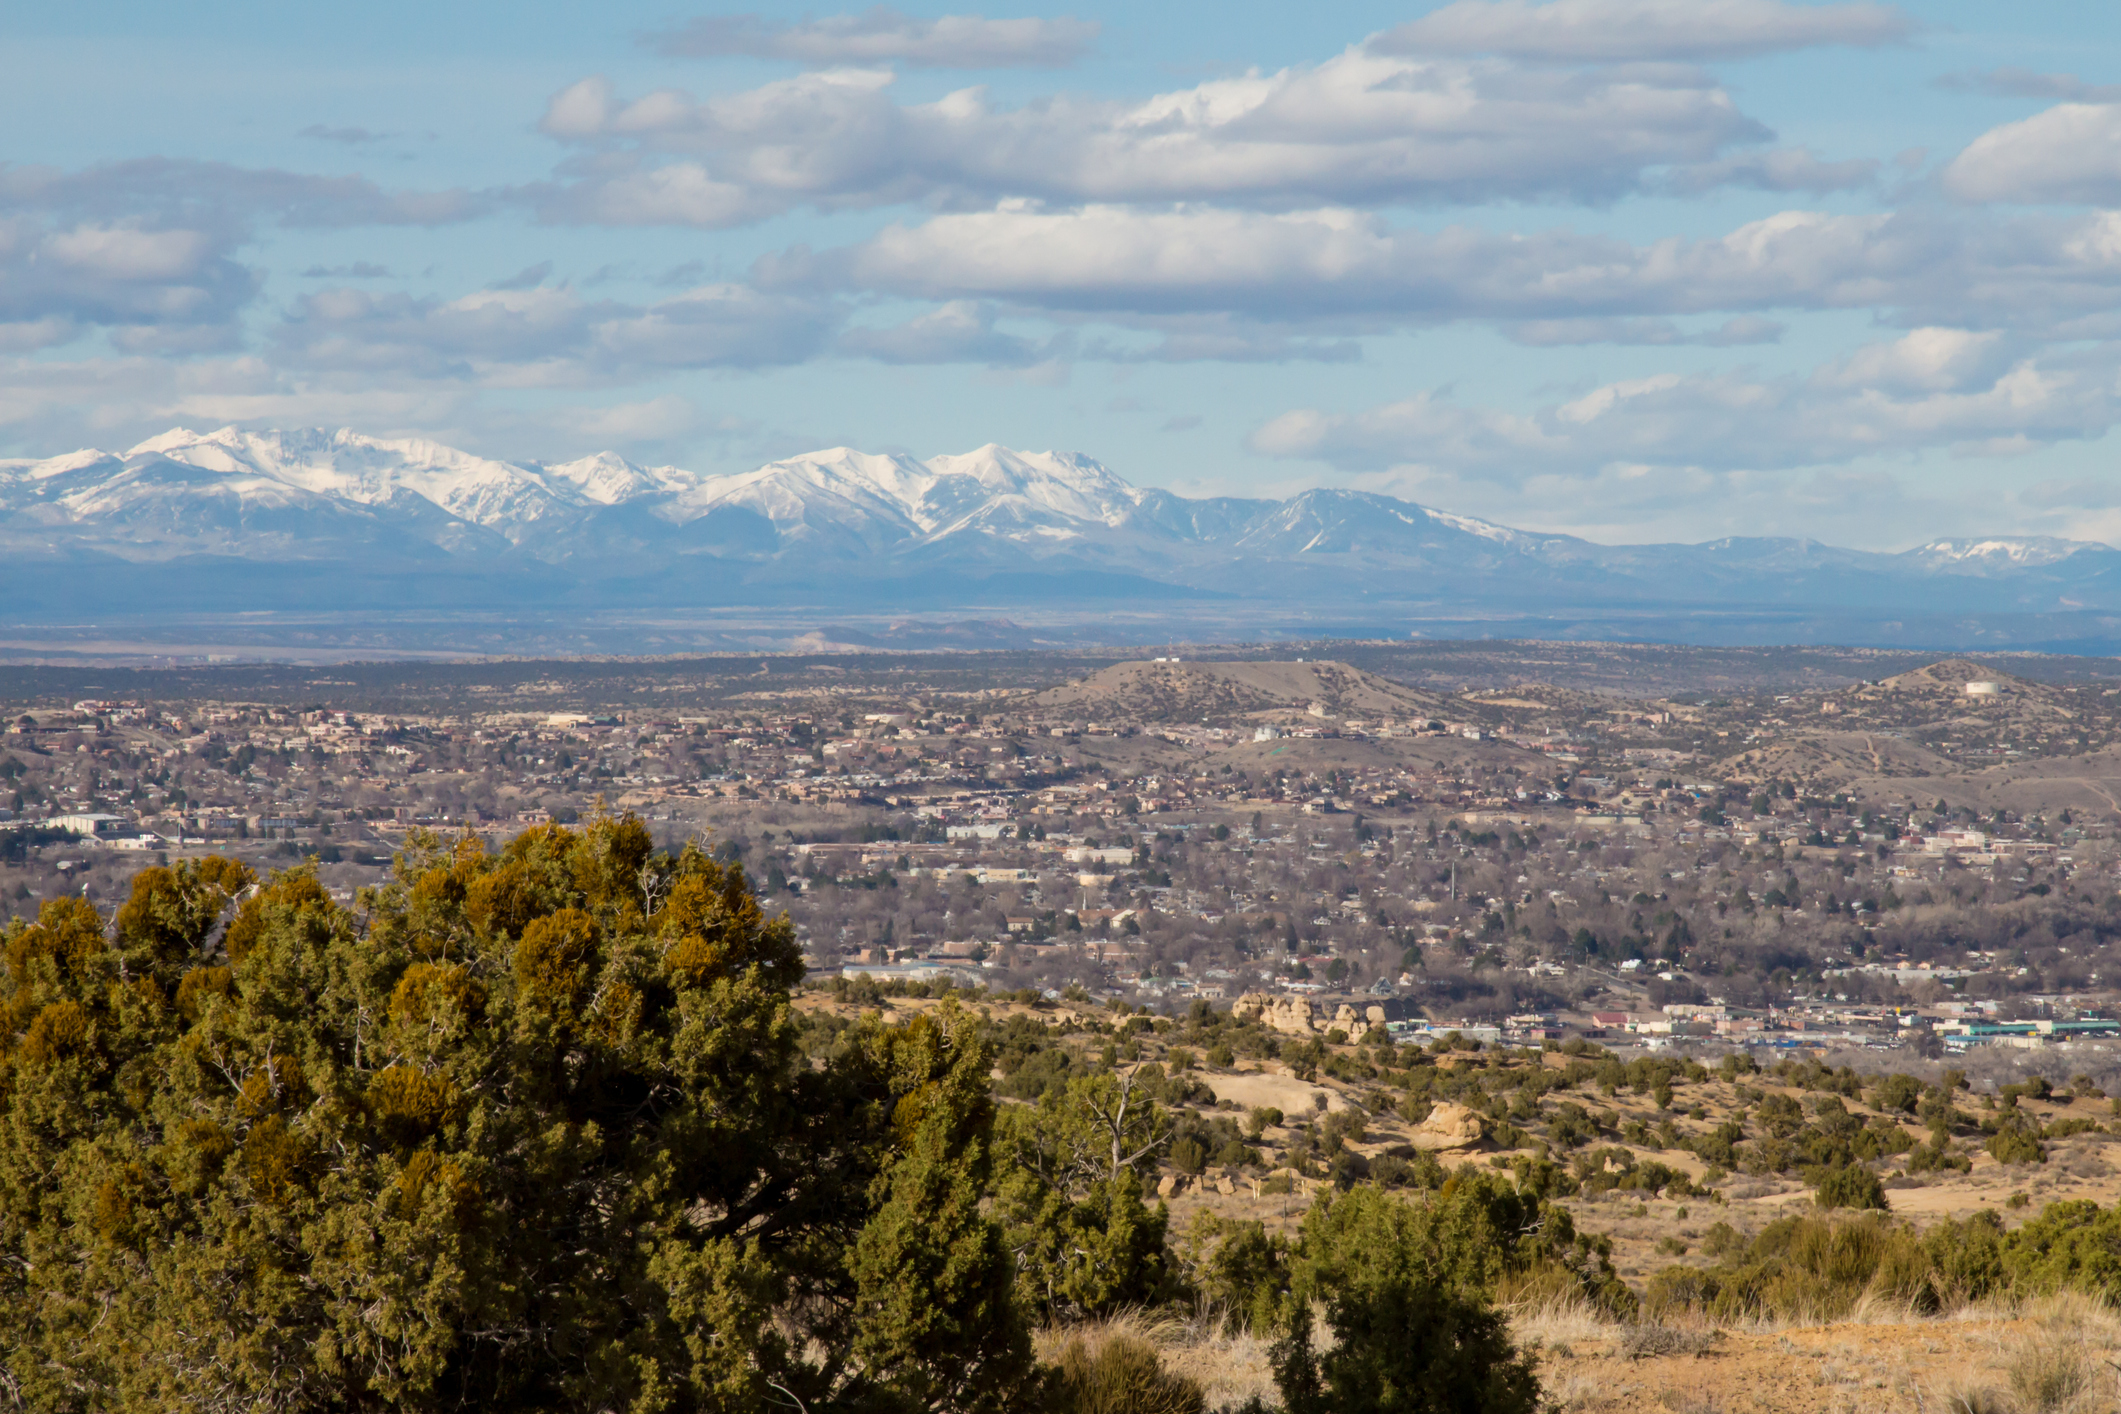 Image looking down on the town of Farmington in northern New Mexico. In the distance are the snowcapped peaks of the San Juan mountains in Colorado. The buildings of the city are interspersed with trees, and there is a pinion pine in the foreground.